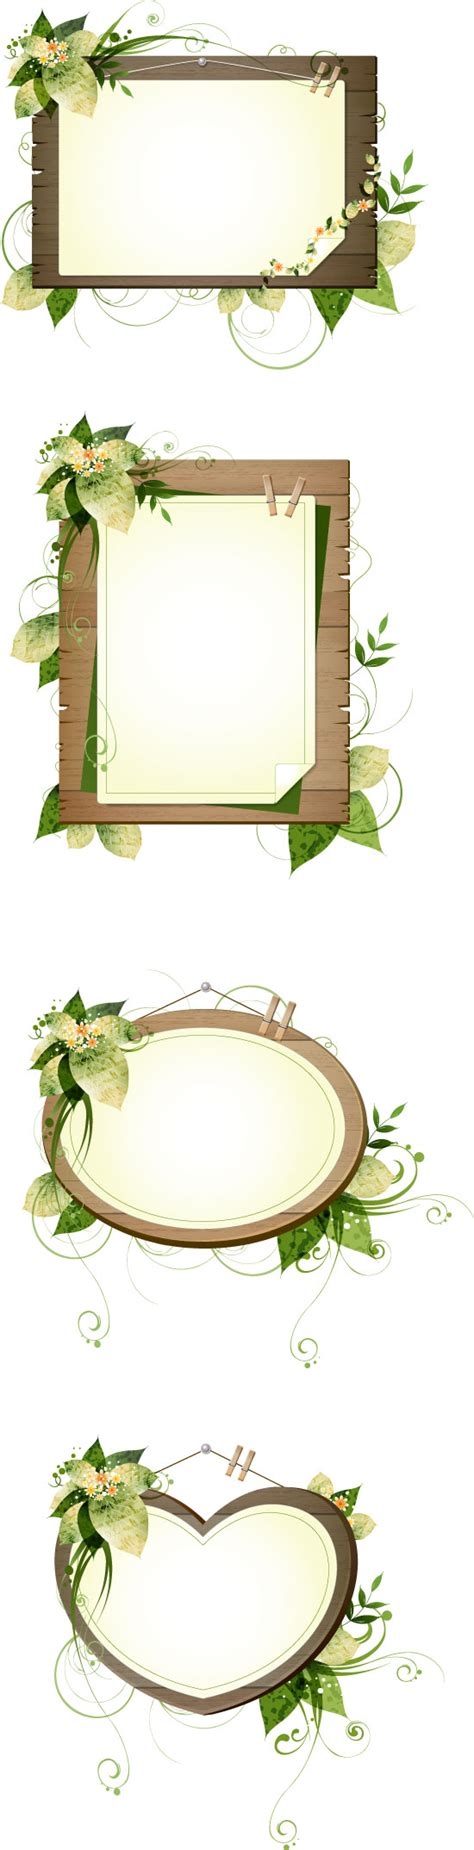 plant decorative wood frame vector vector frames borders free download